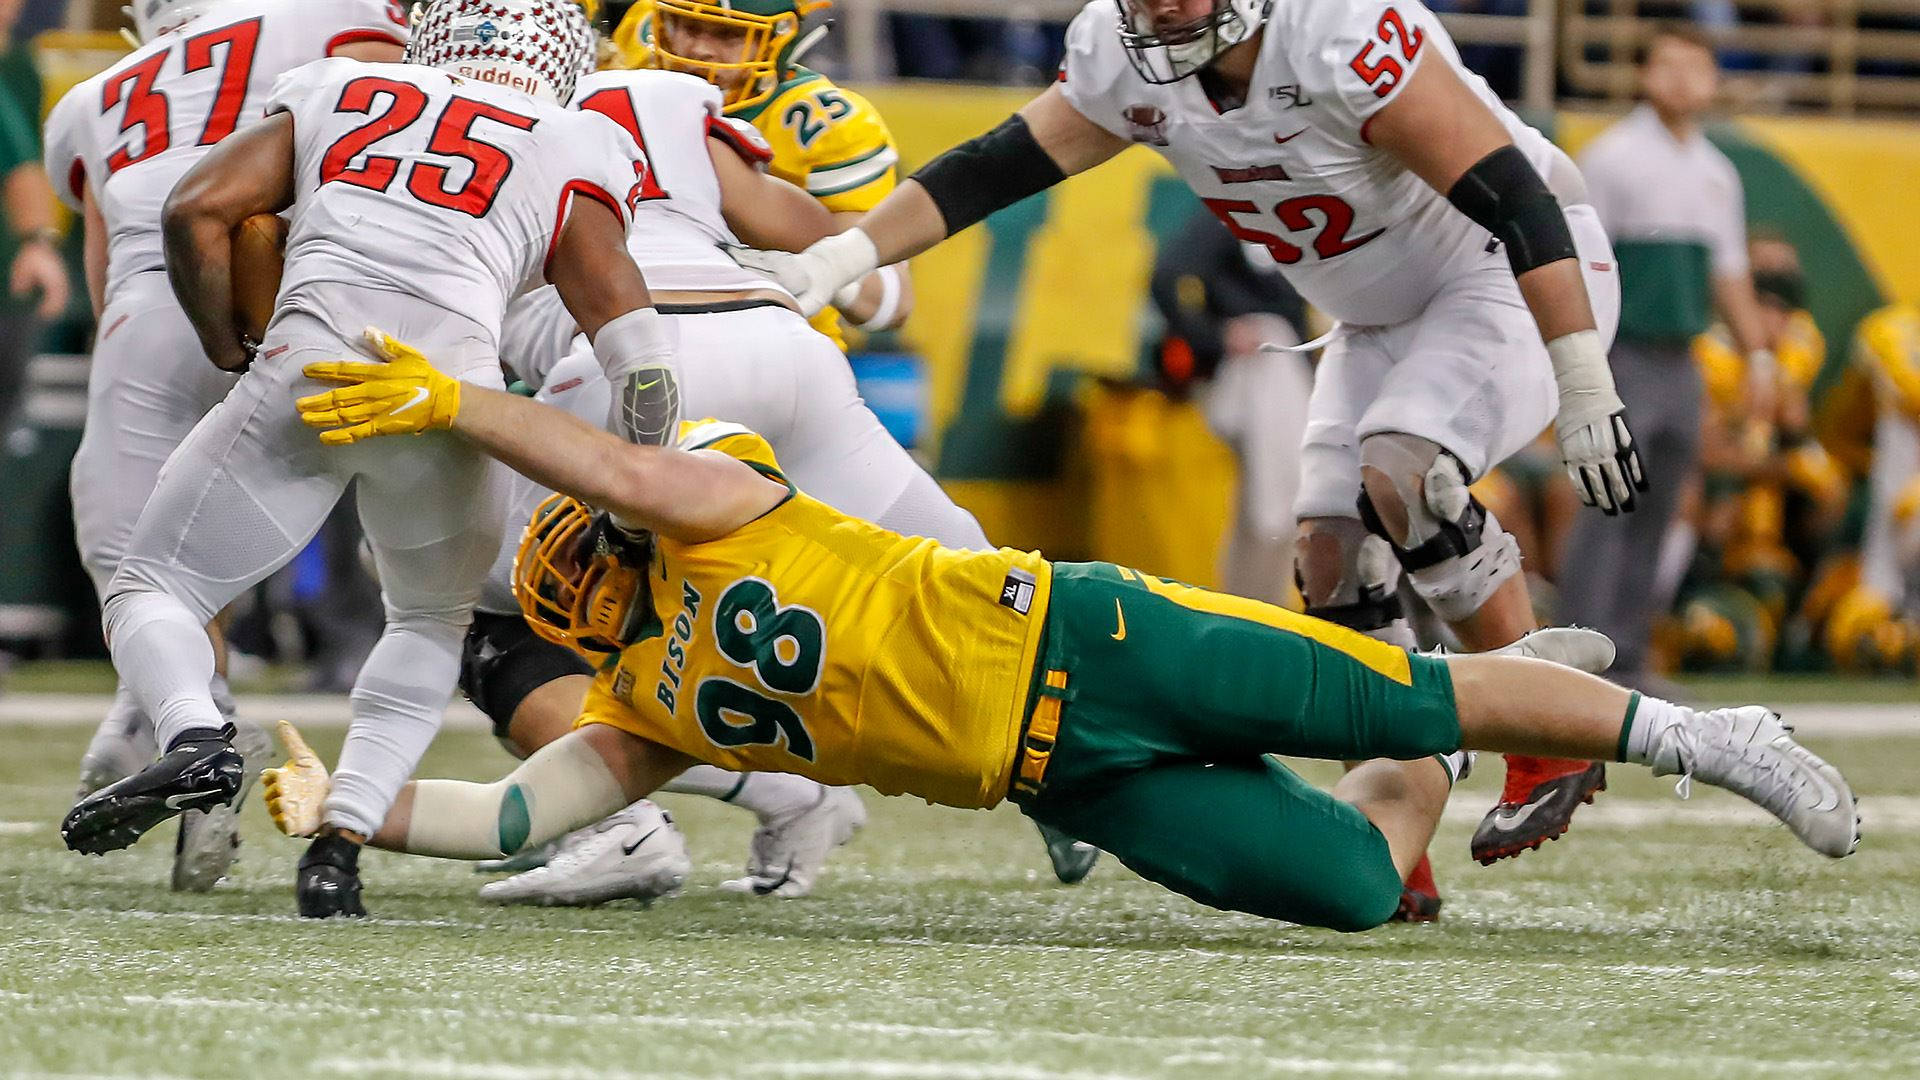 North Dakota State to host Bobcats in FCS semifinals